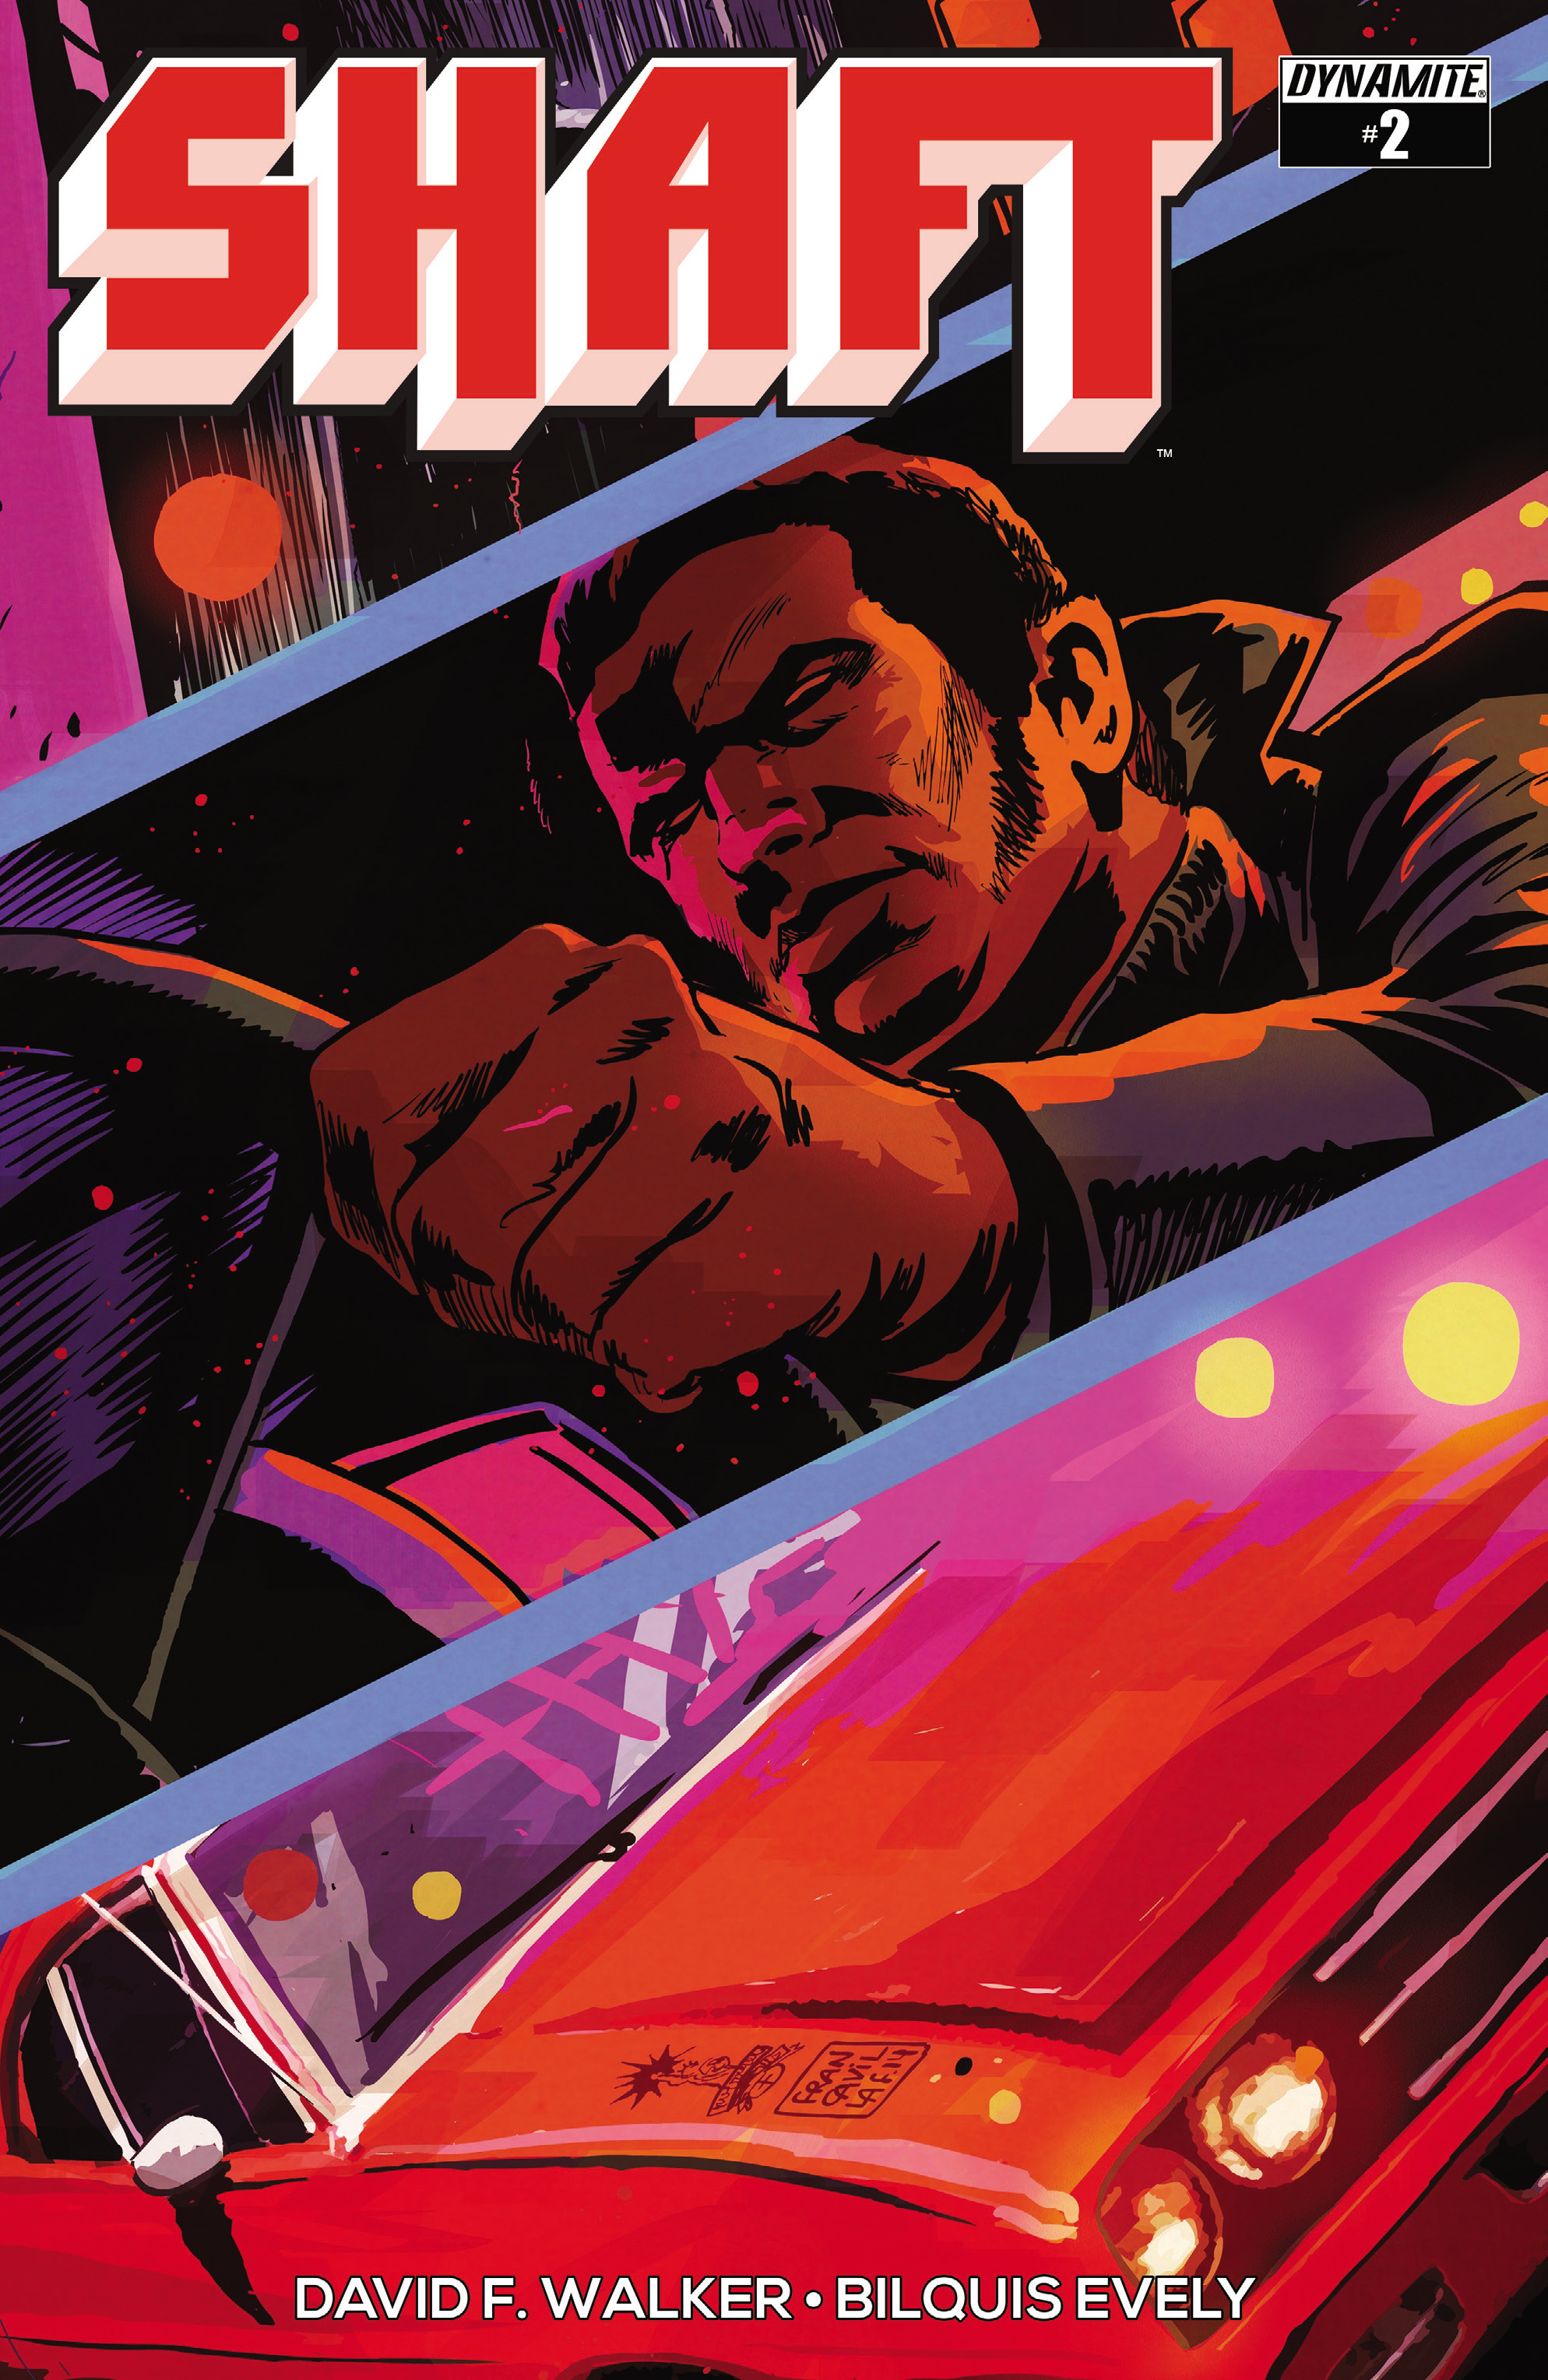 Read online Shaft comic -  Issue #2 - 2